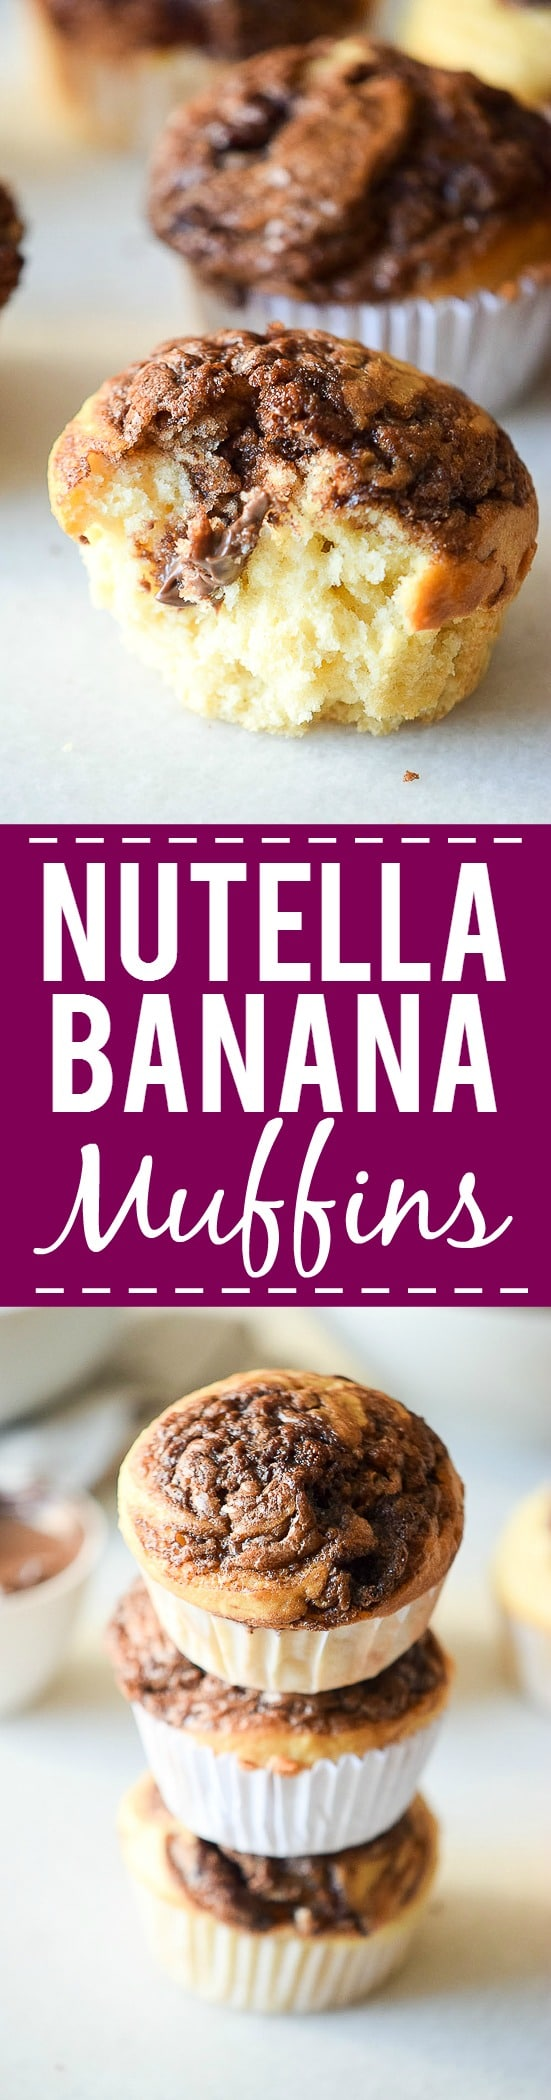 Nutella Banana Muffins Recipe -Decadent chocolate and creamy sweet bananas make a heavenly combination that's perfect, even for breakfast in this Nutella Banana Muffins recipe! Great breakfast idea for kids and freezer friendly too.